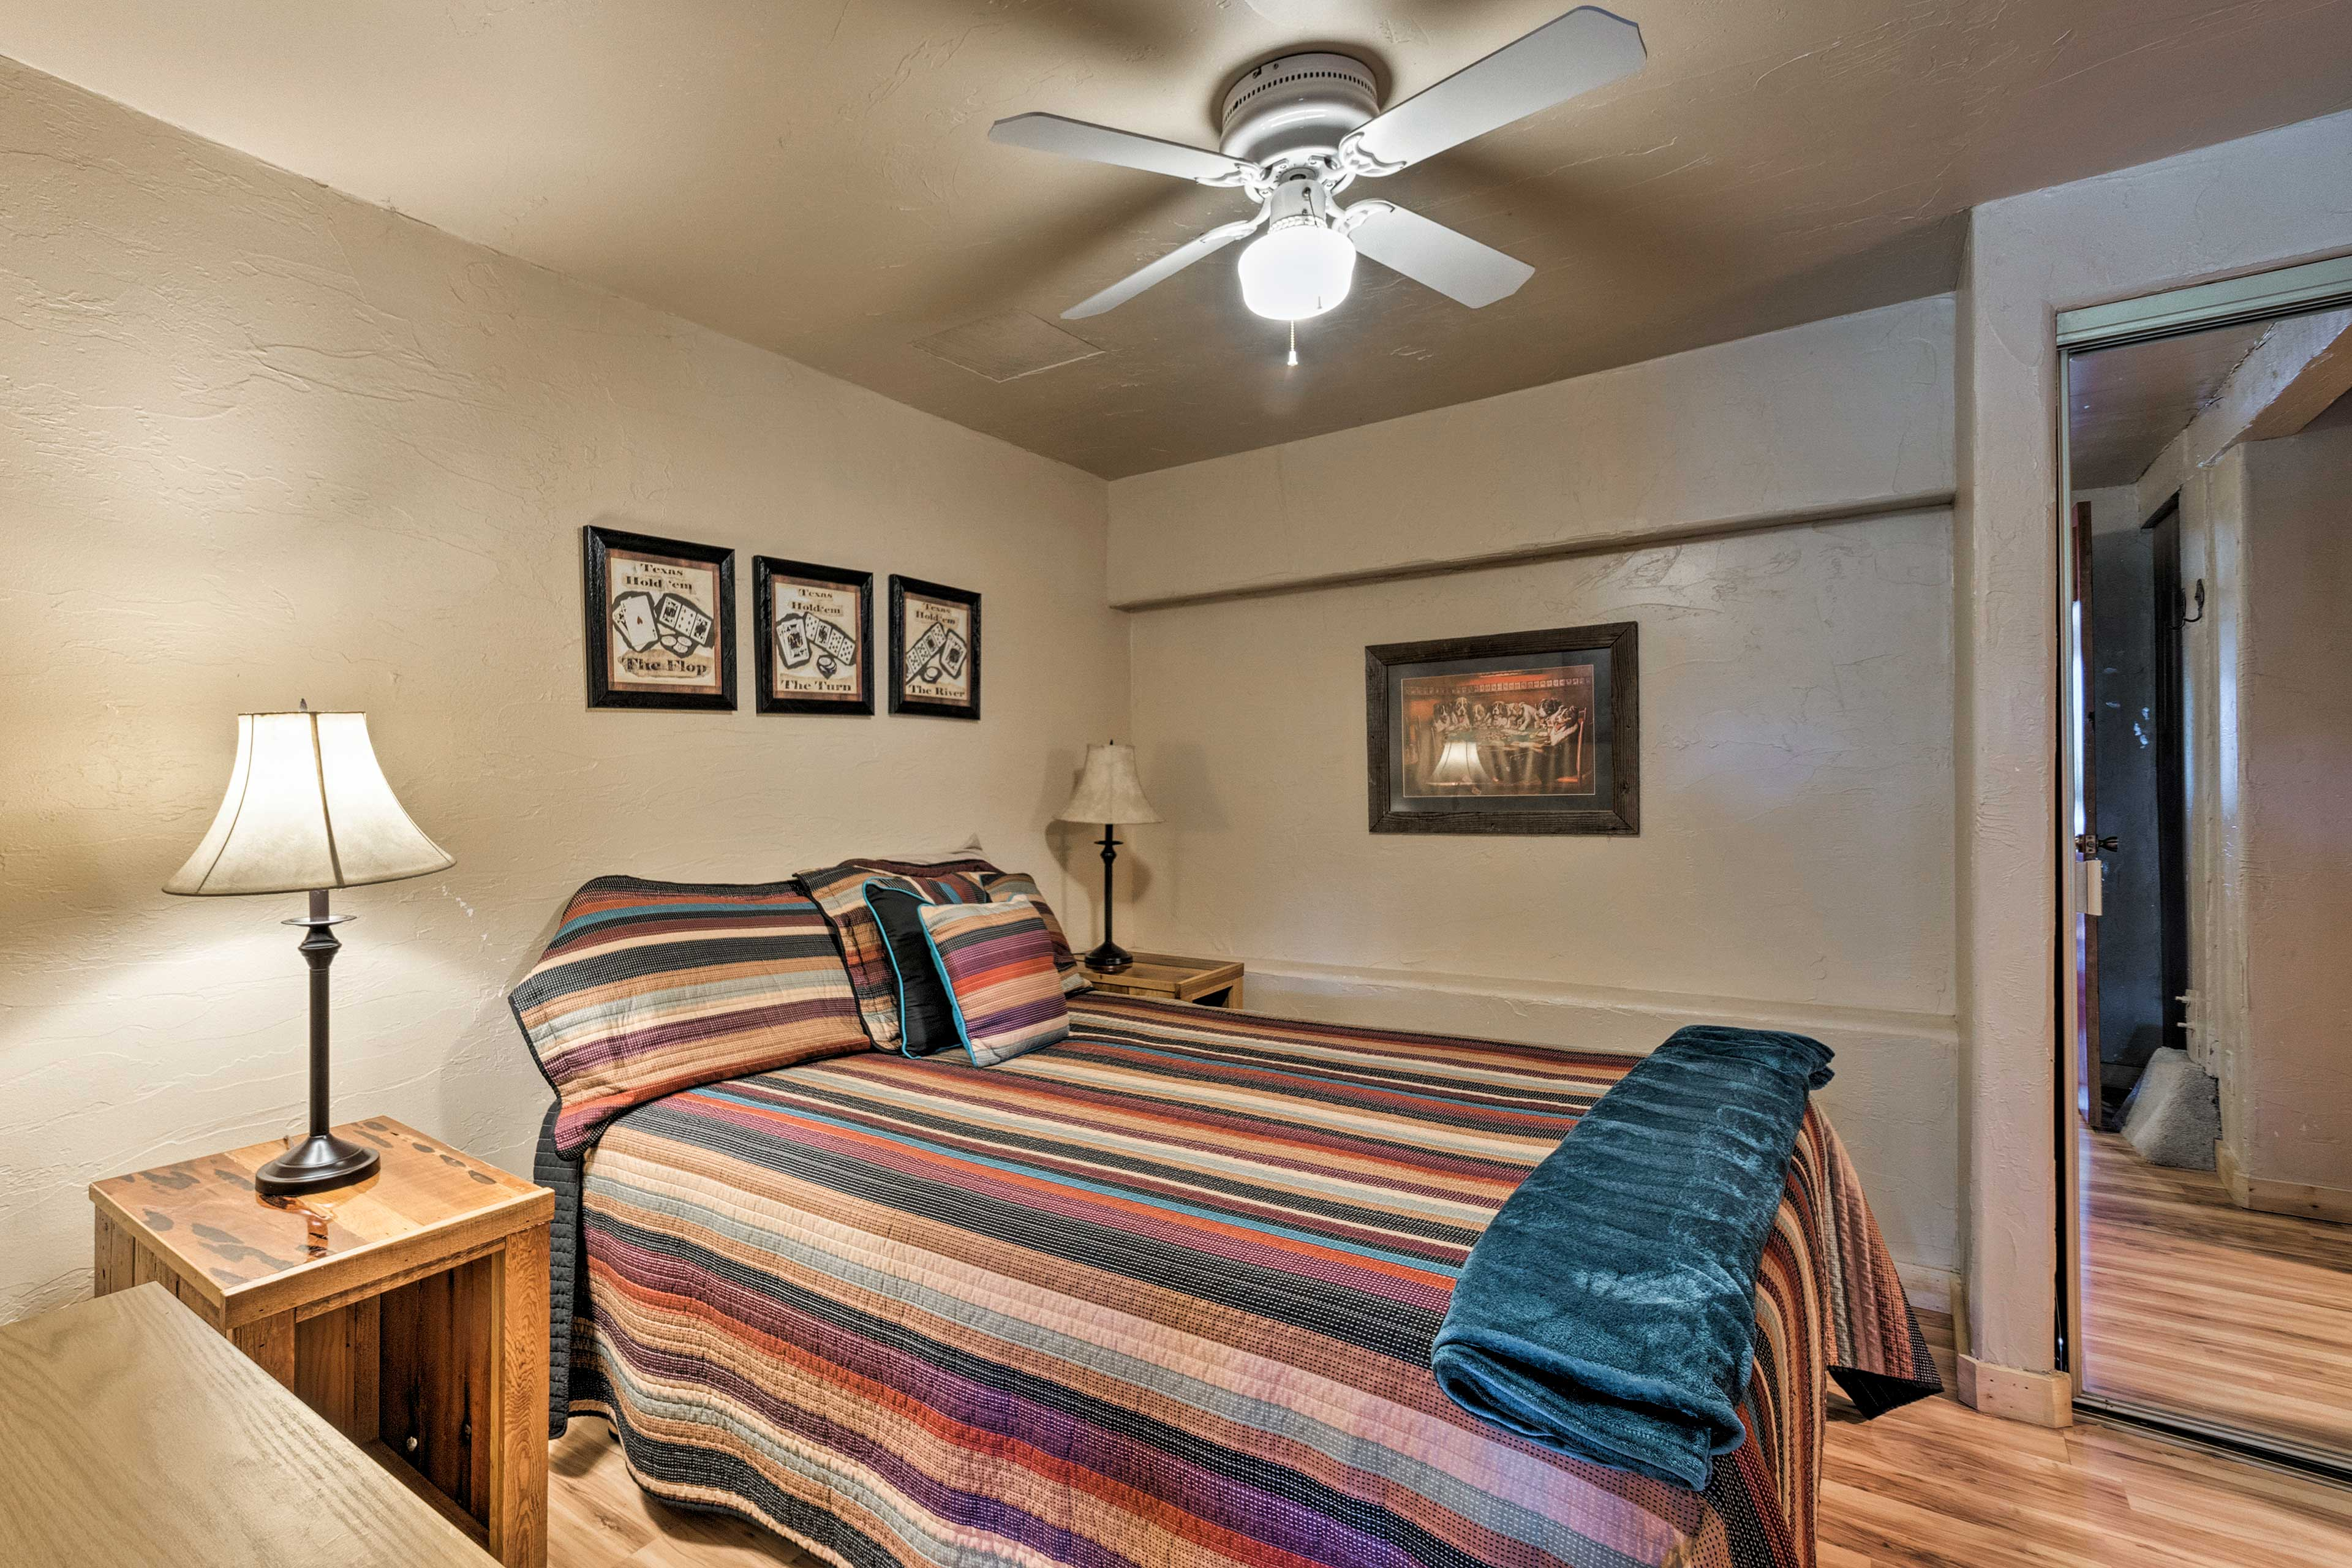 Turn on the ceiling fan and drift to sleep in this queen bed.